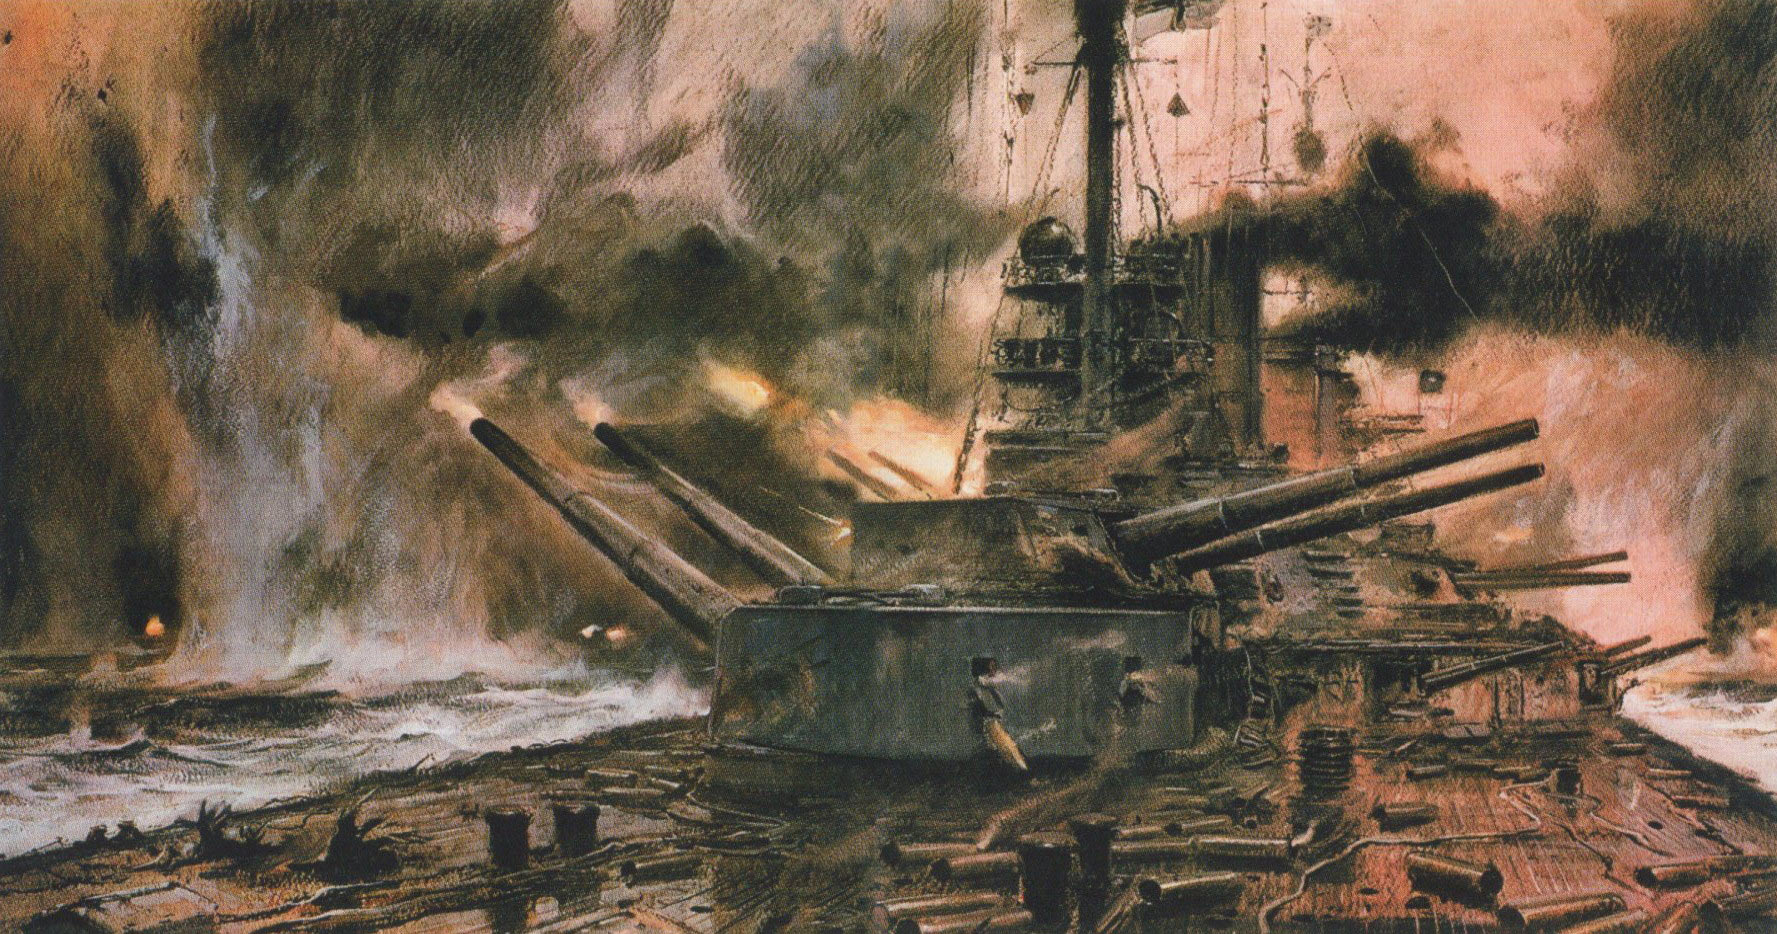 German Battle Cruiser SMS Seydlitz in action at the Battle of Jutland on 31st May 1916: picture by Claus Bergen